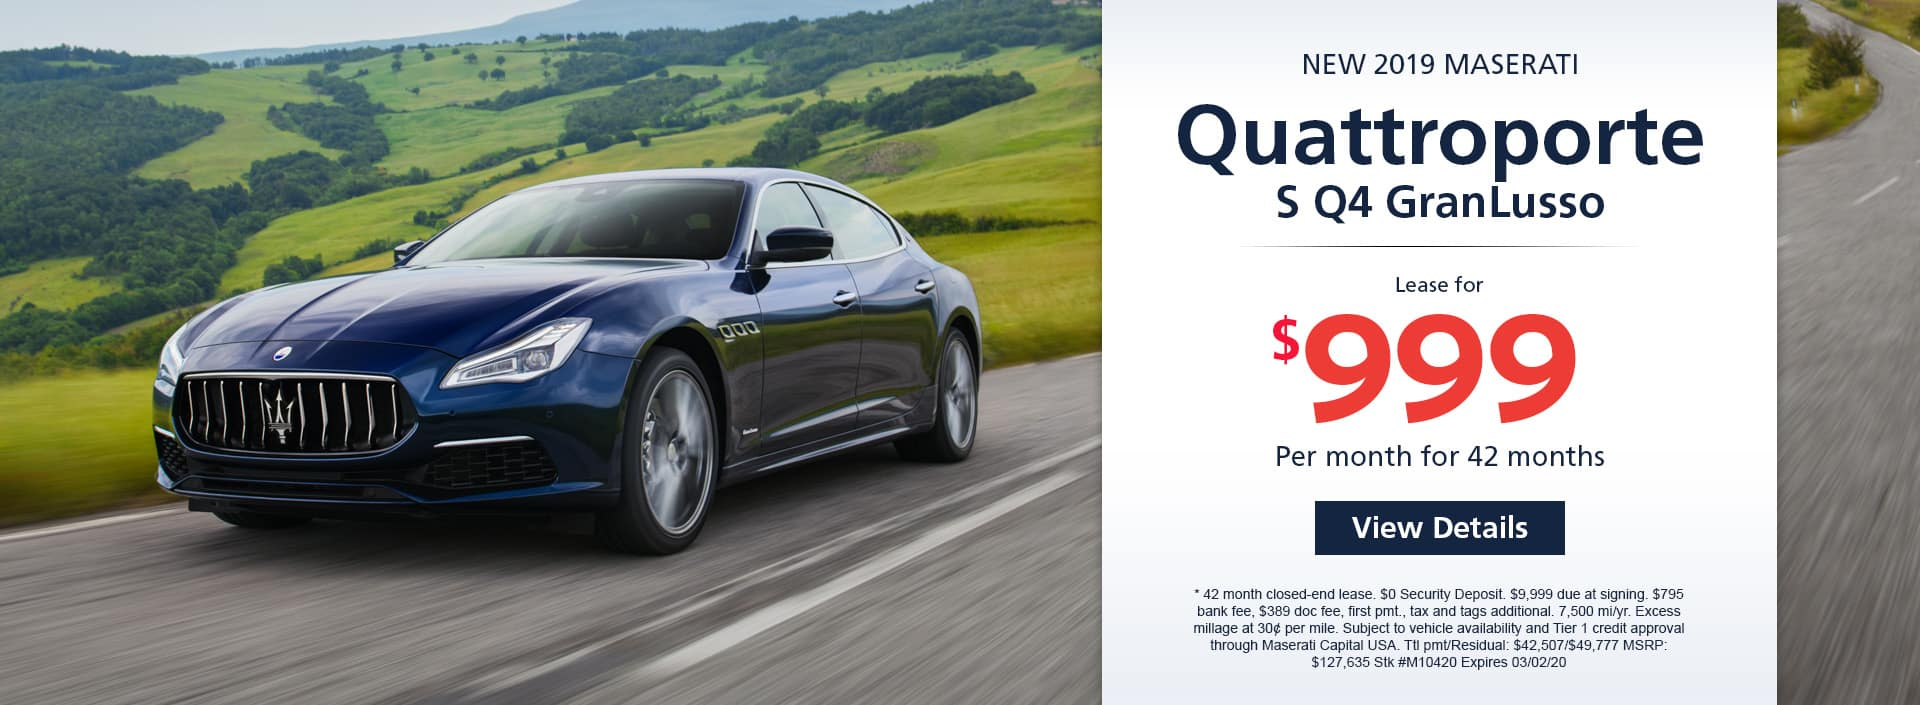 Lease a new 2019 Maserati Quattroporte S Q4 GranLusso for $999 a month for 42 months. Or get special 0% APR financing for up to 60 months or 0% APR financing up to 84 months